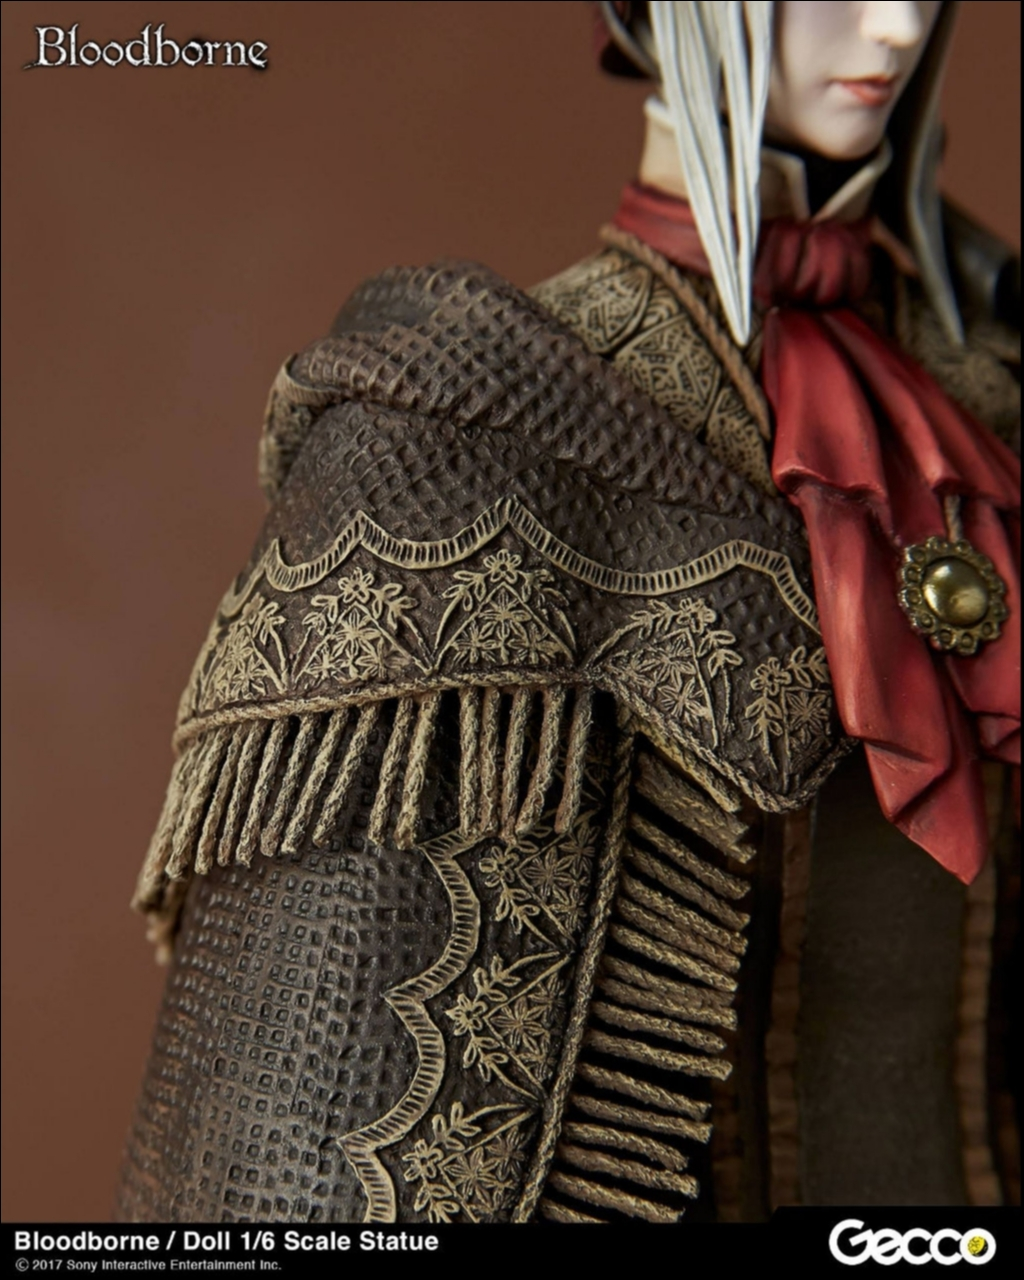 bloodborne-Doll-figure-statue-new-preorder-10-6-1499370771-59-1499371335.jpg